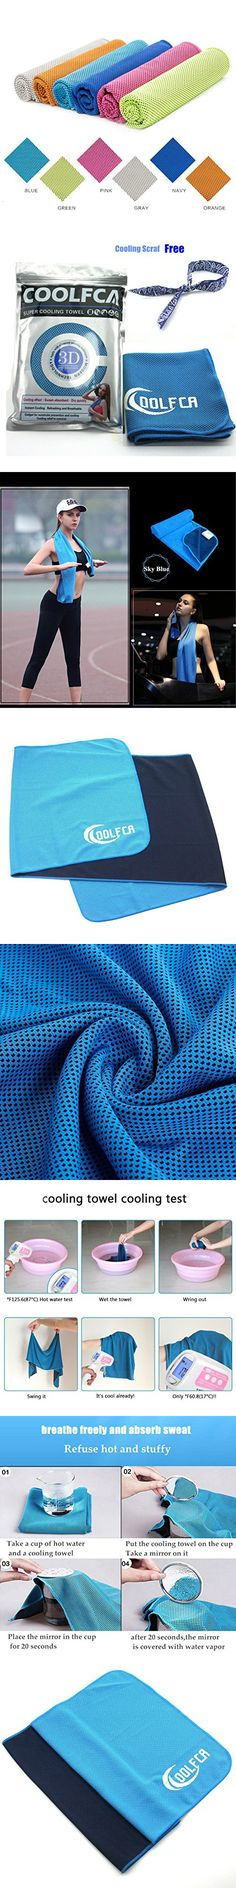 40 12 Snap Cooling Towel Summer Ice Cooling Sweat Sports Towel Stay Cool for BowlingGym, Yoga, Pilates, Travel, Camping Fitness Sports Outdoors And Free Of Charge One Cooling Scarf (sky blue)